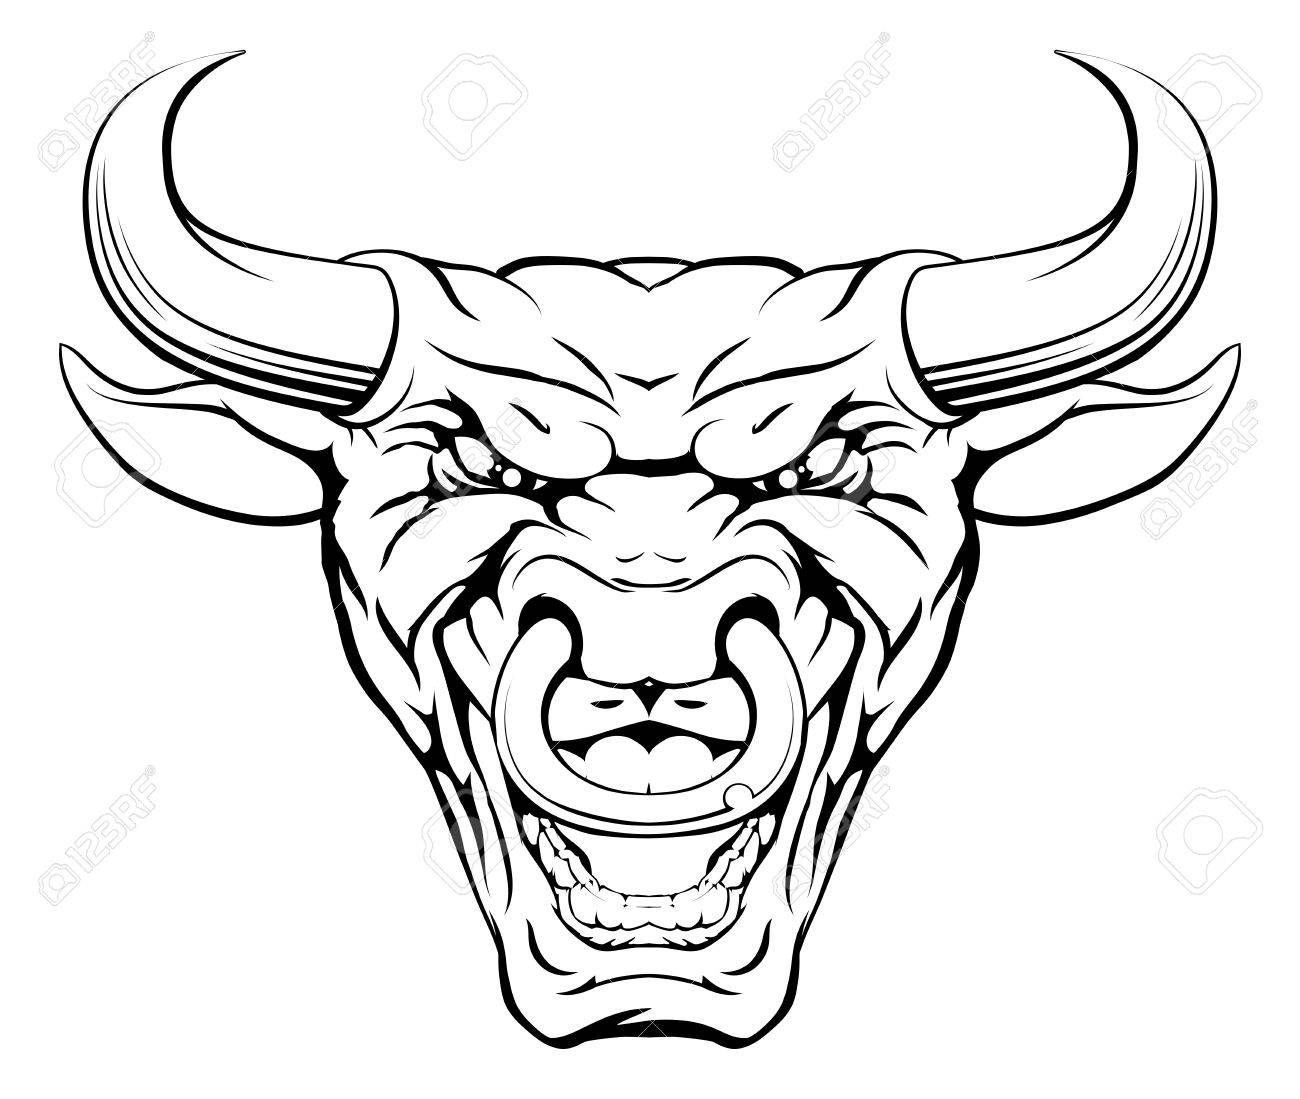 1300x1099 A Mean Looking Bull Mascot Character With A Ring Through Its Nose